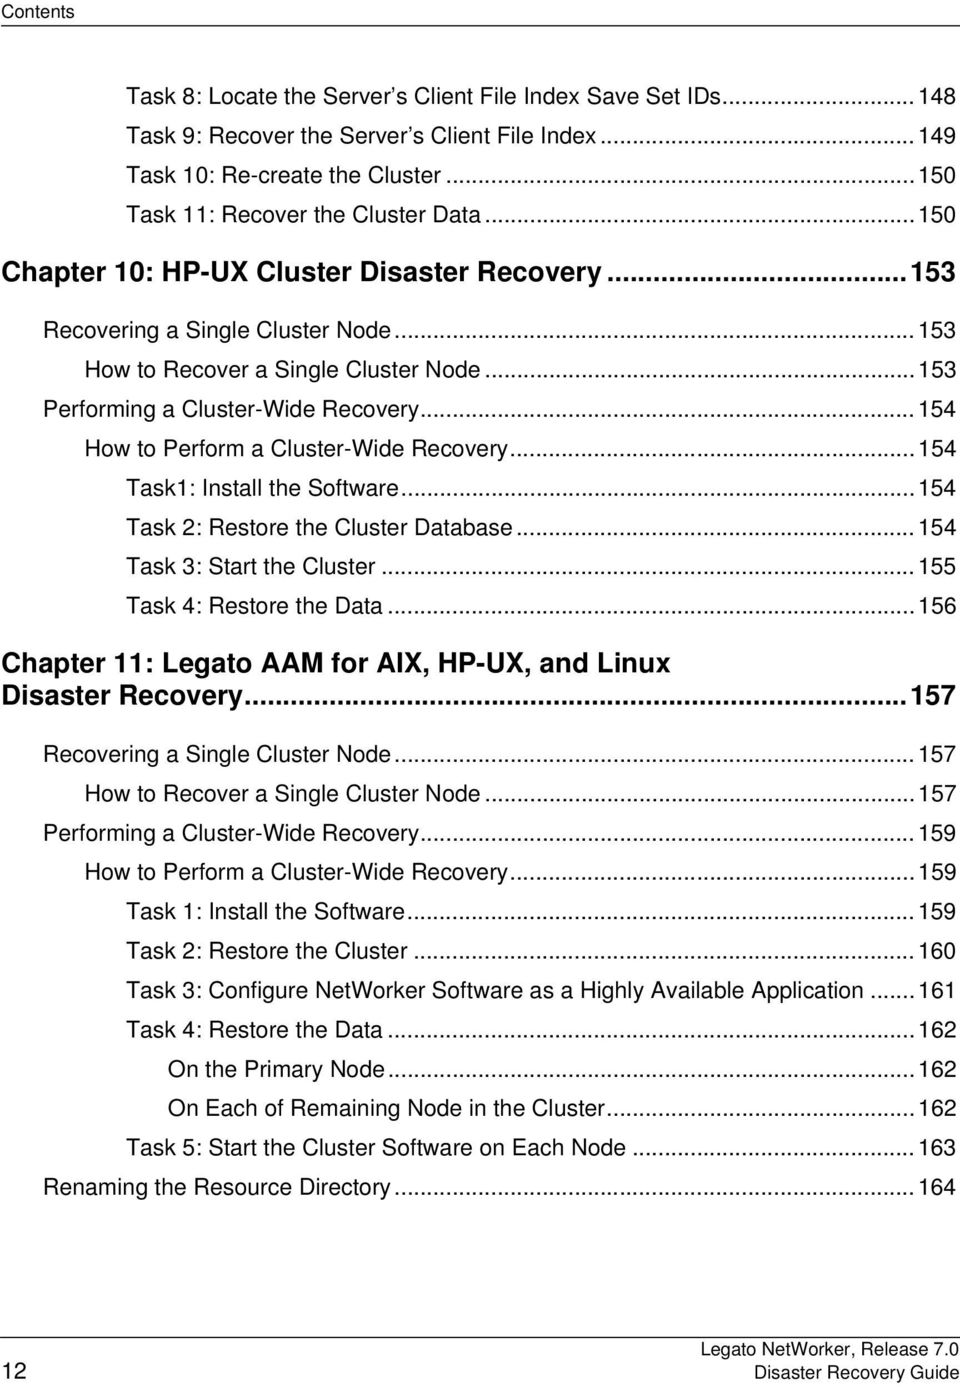 ..154. How to Perform a Cluster-Wide Recovery...154. Task1: Install the Software...154. Task 2: Restore the Cluster Database...154. Task 3: Start the Cluster...155. Task 4: Restore the Data...156.